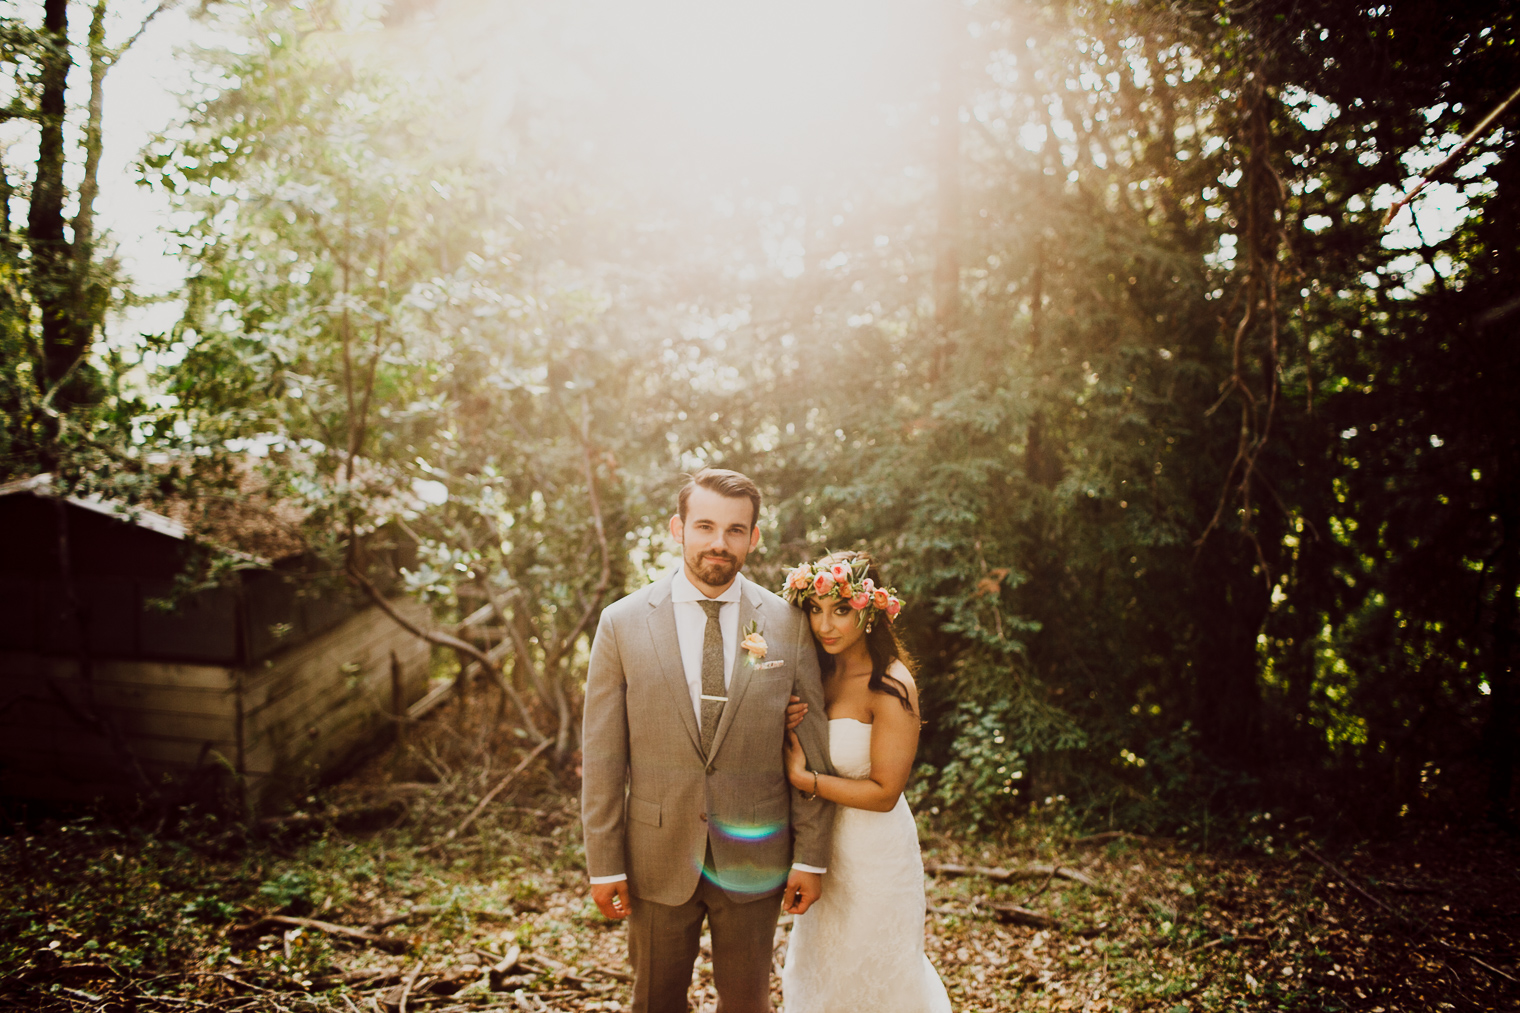 camp-kennolyn-wedding-photographer-96.jpg